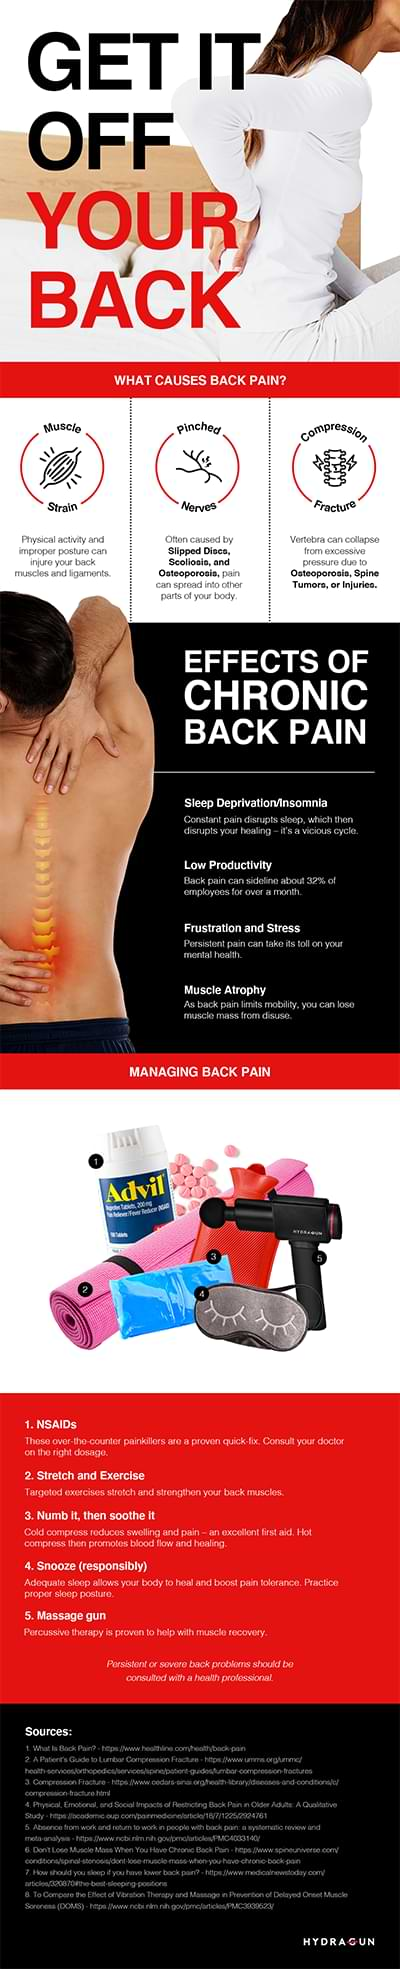 Infographic containing basic guidelines on managing back pain